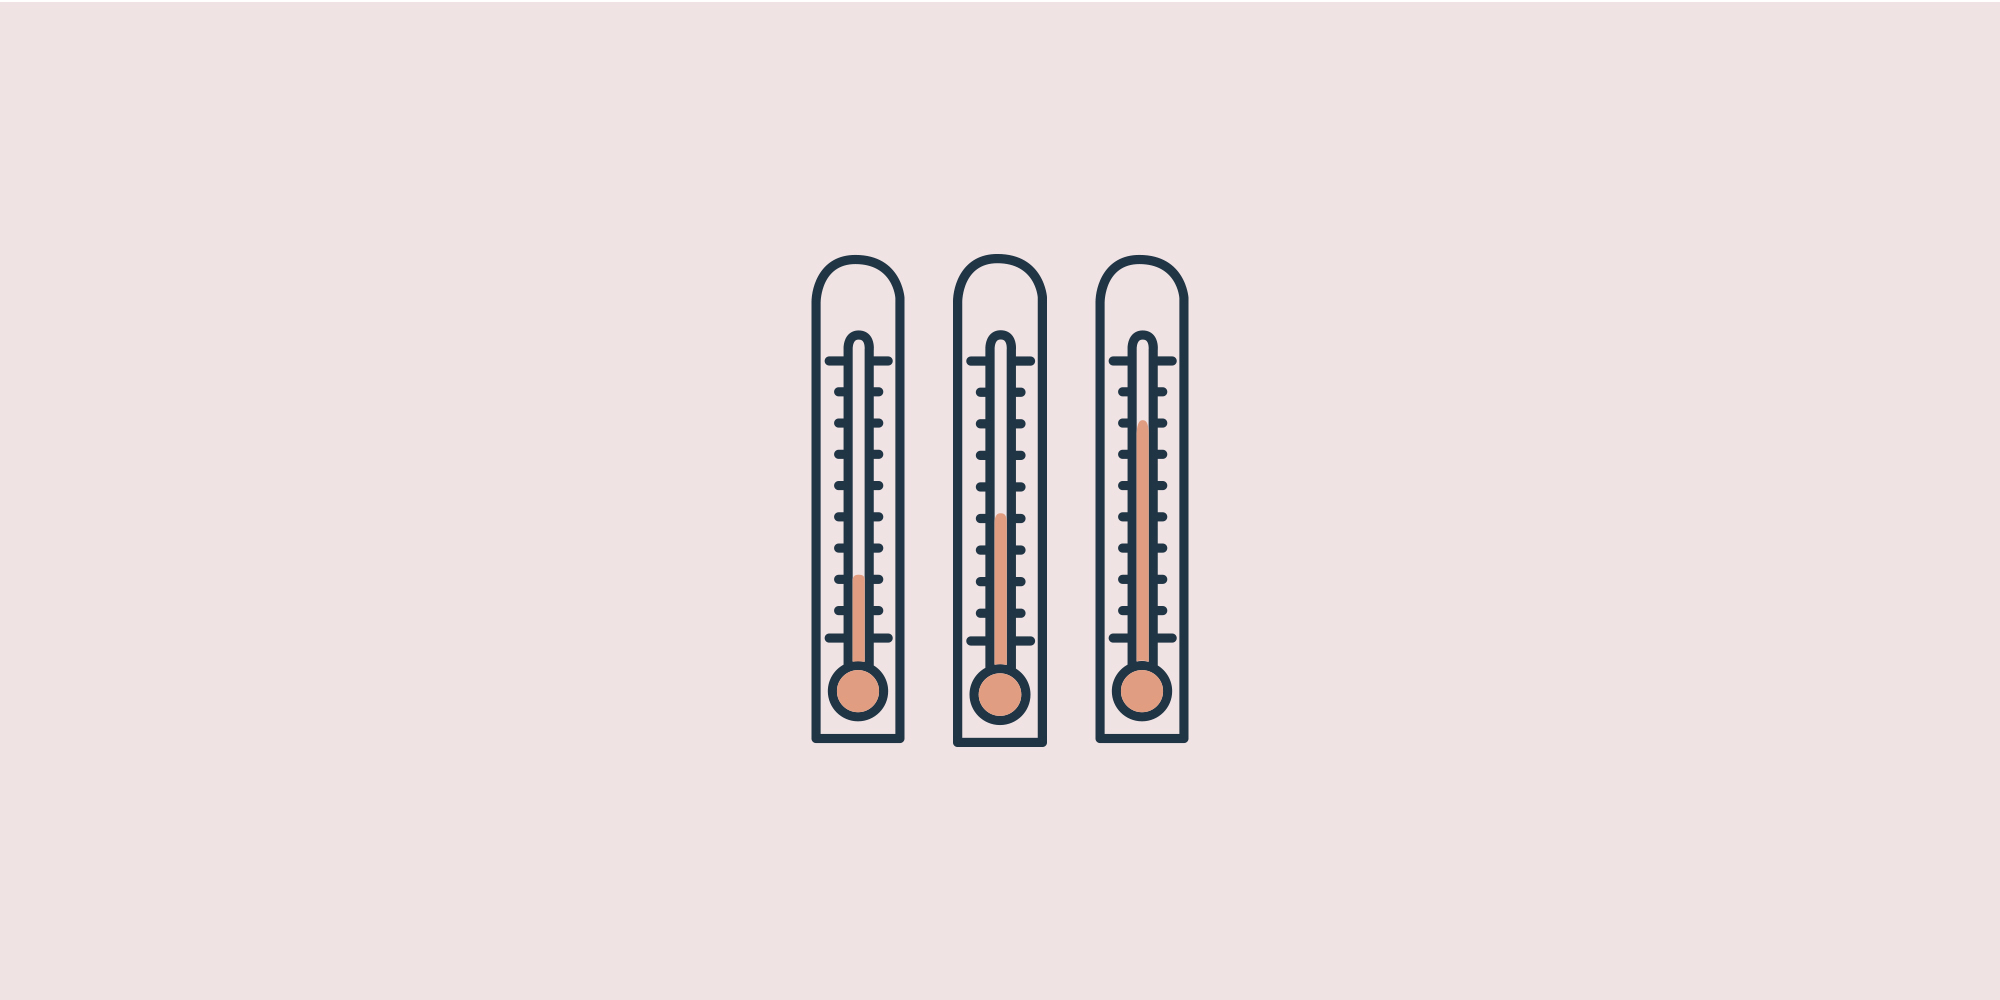 Three thermometer icons